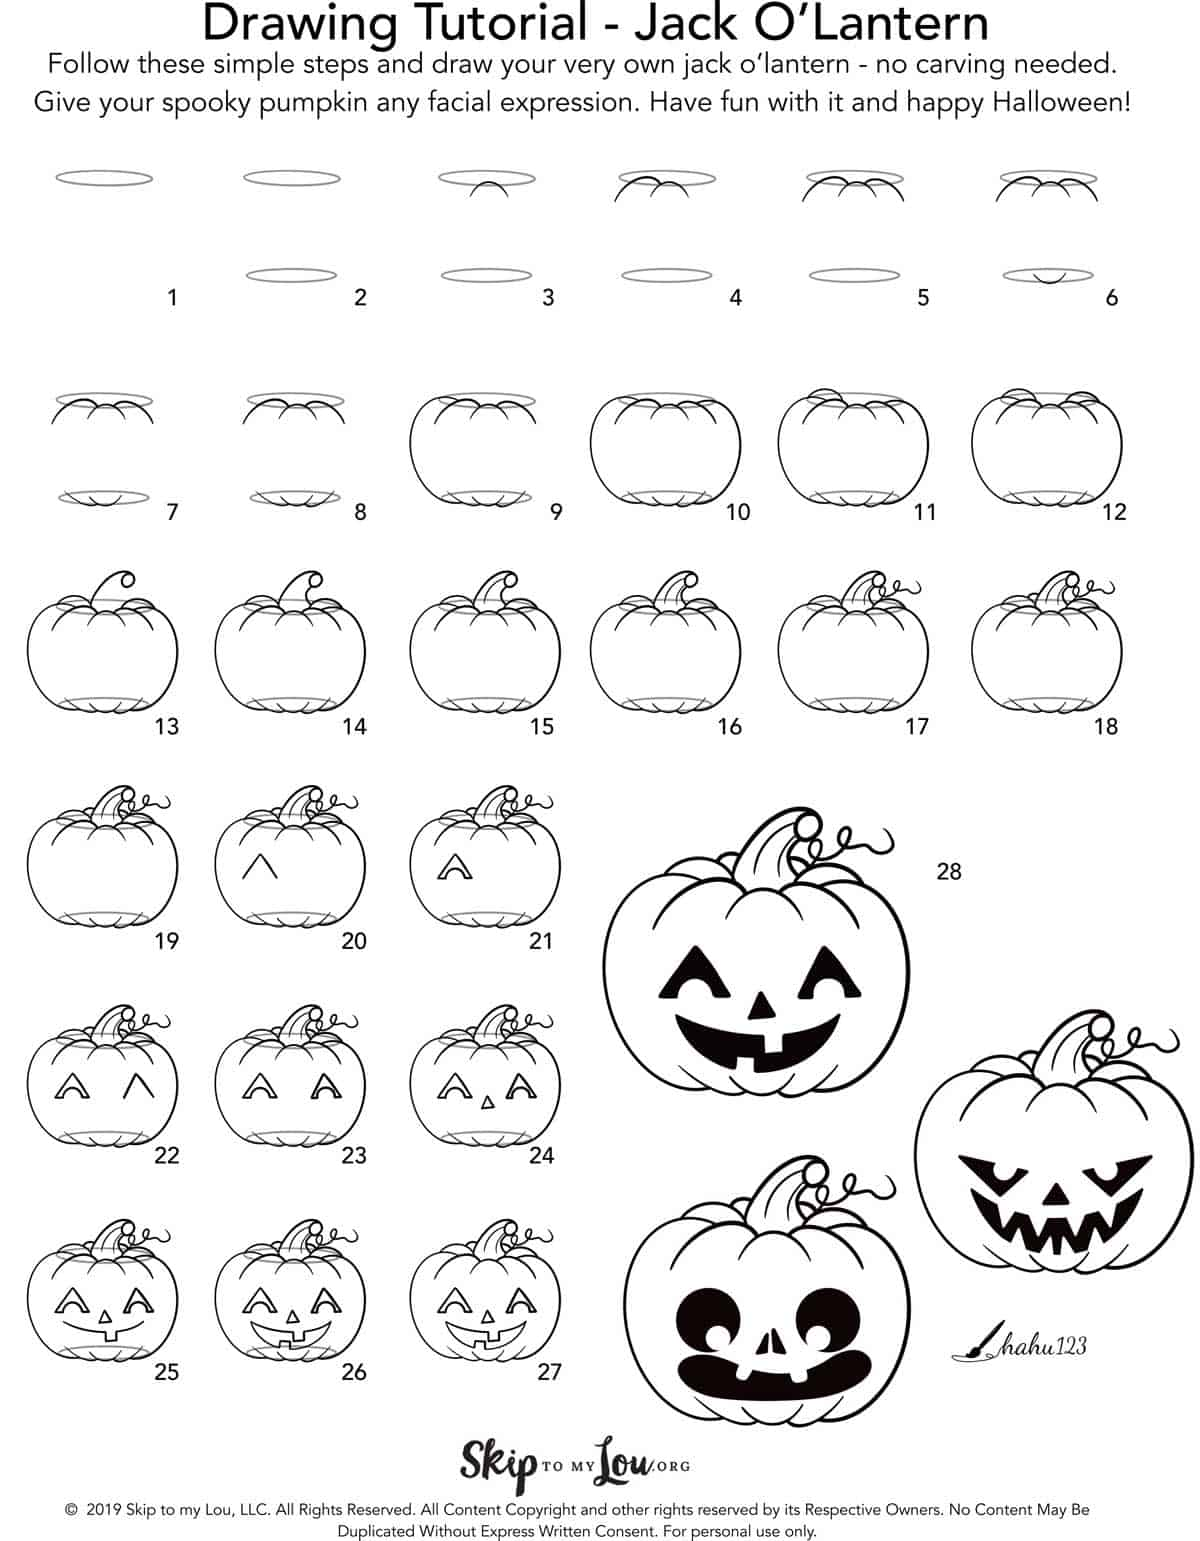 Easy Jack O Lantern Drawing Tutorial